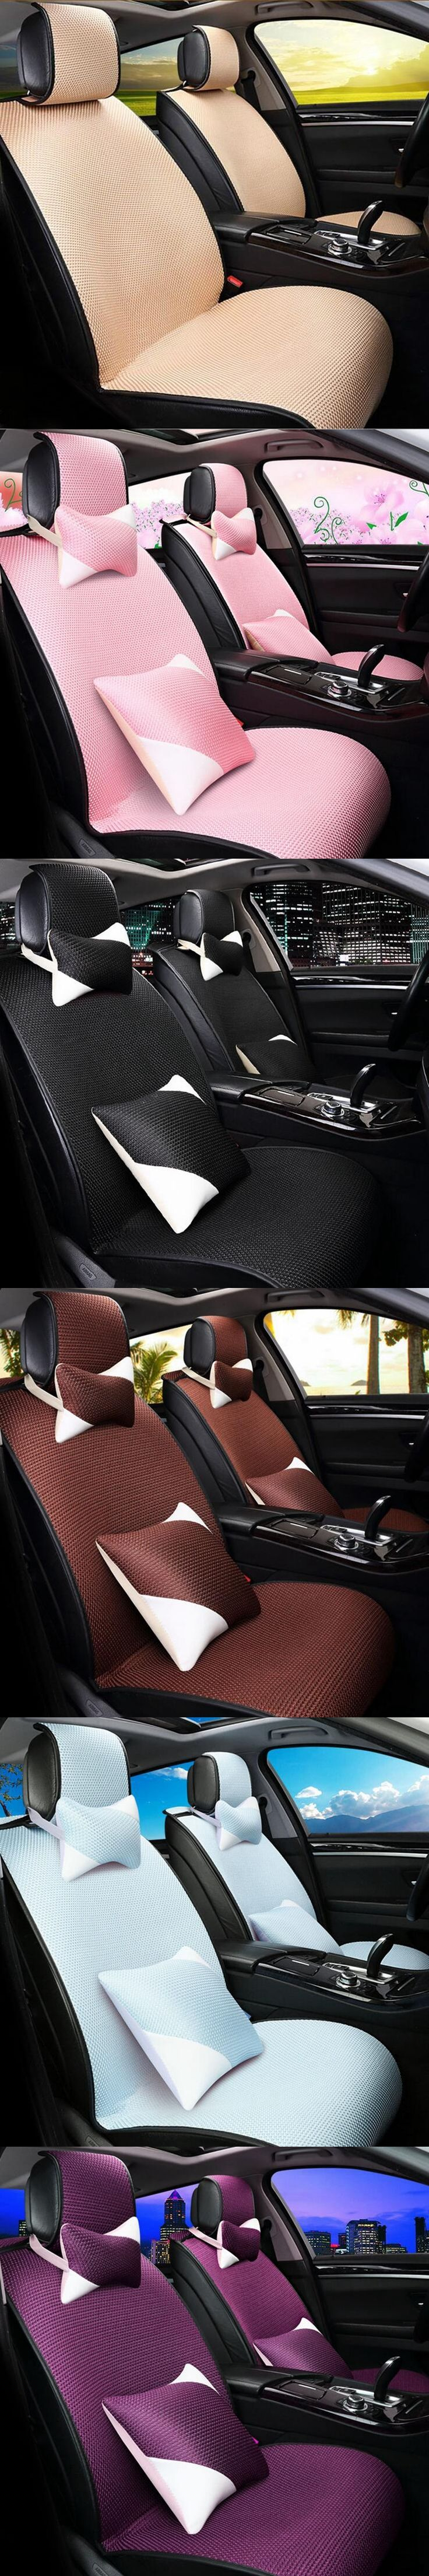 LUNASBORE Car Seat Covers Pad fit SedanSeats Cushion Luxurious Universal Styling Compatible with airbags and Rear Cup holder